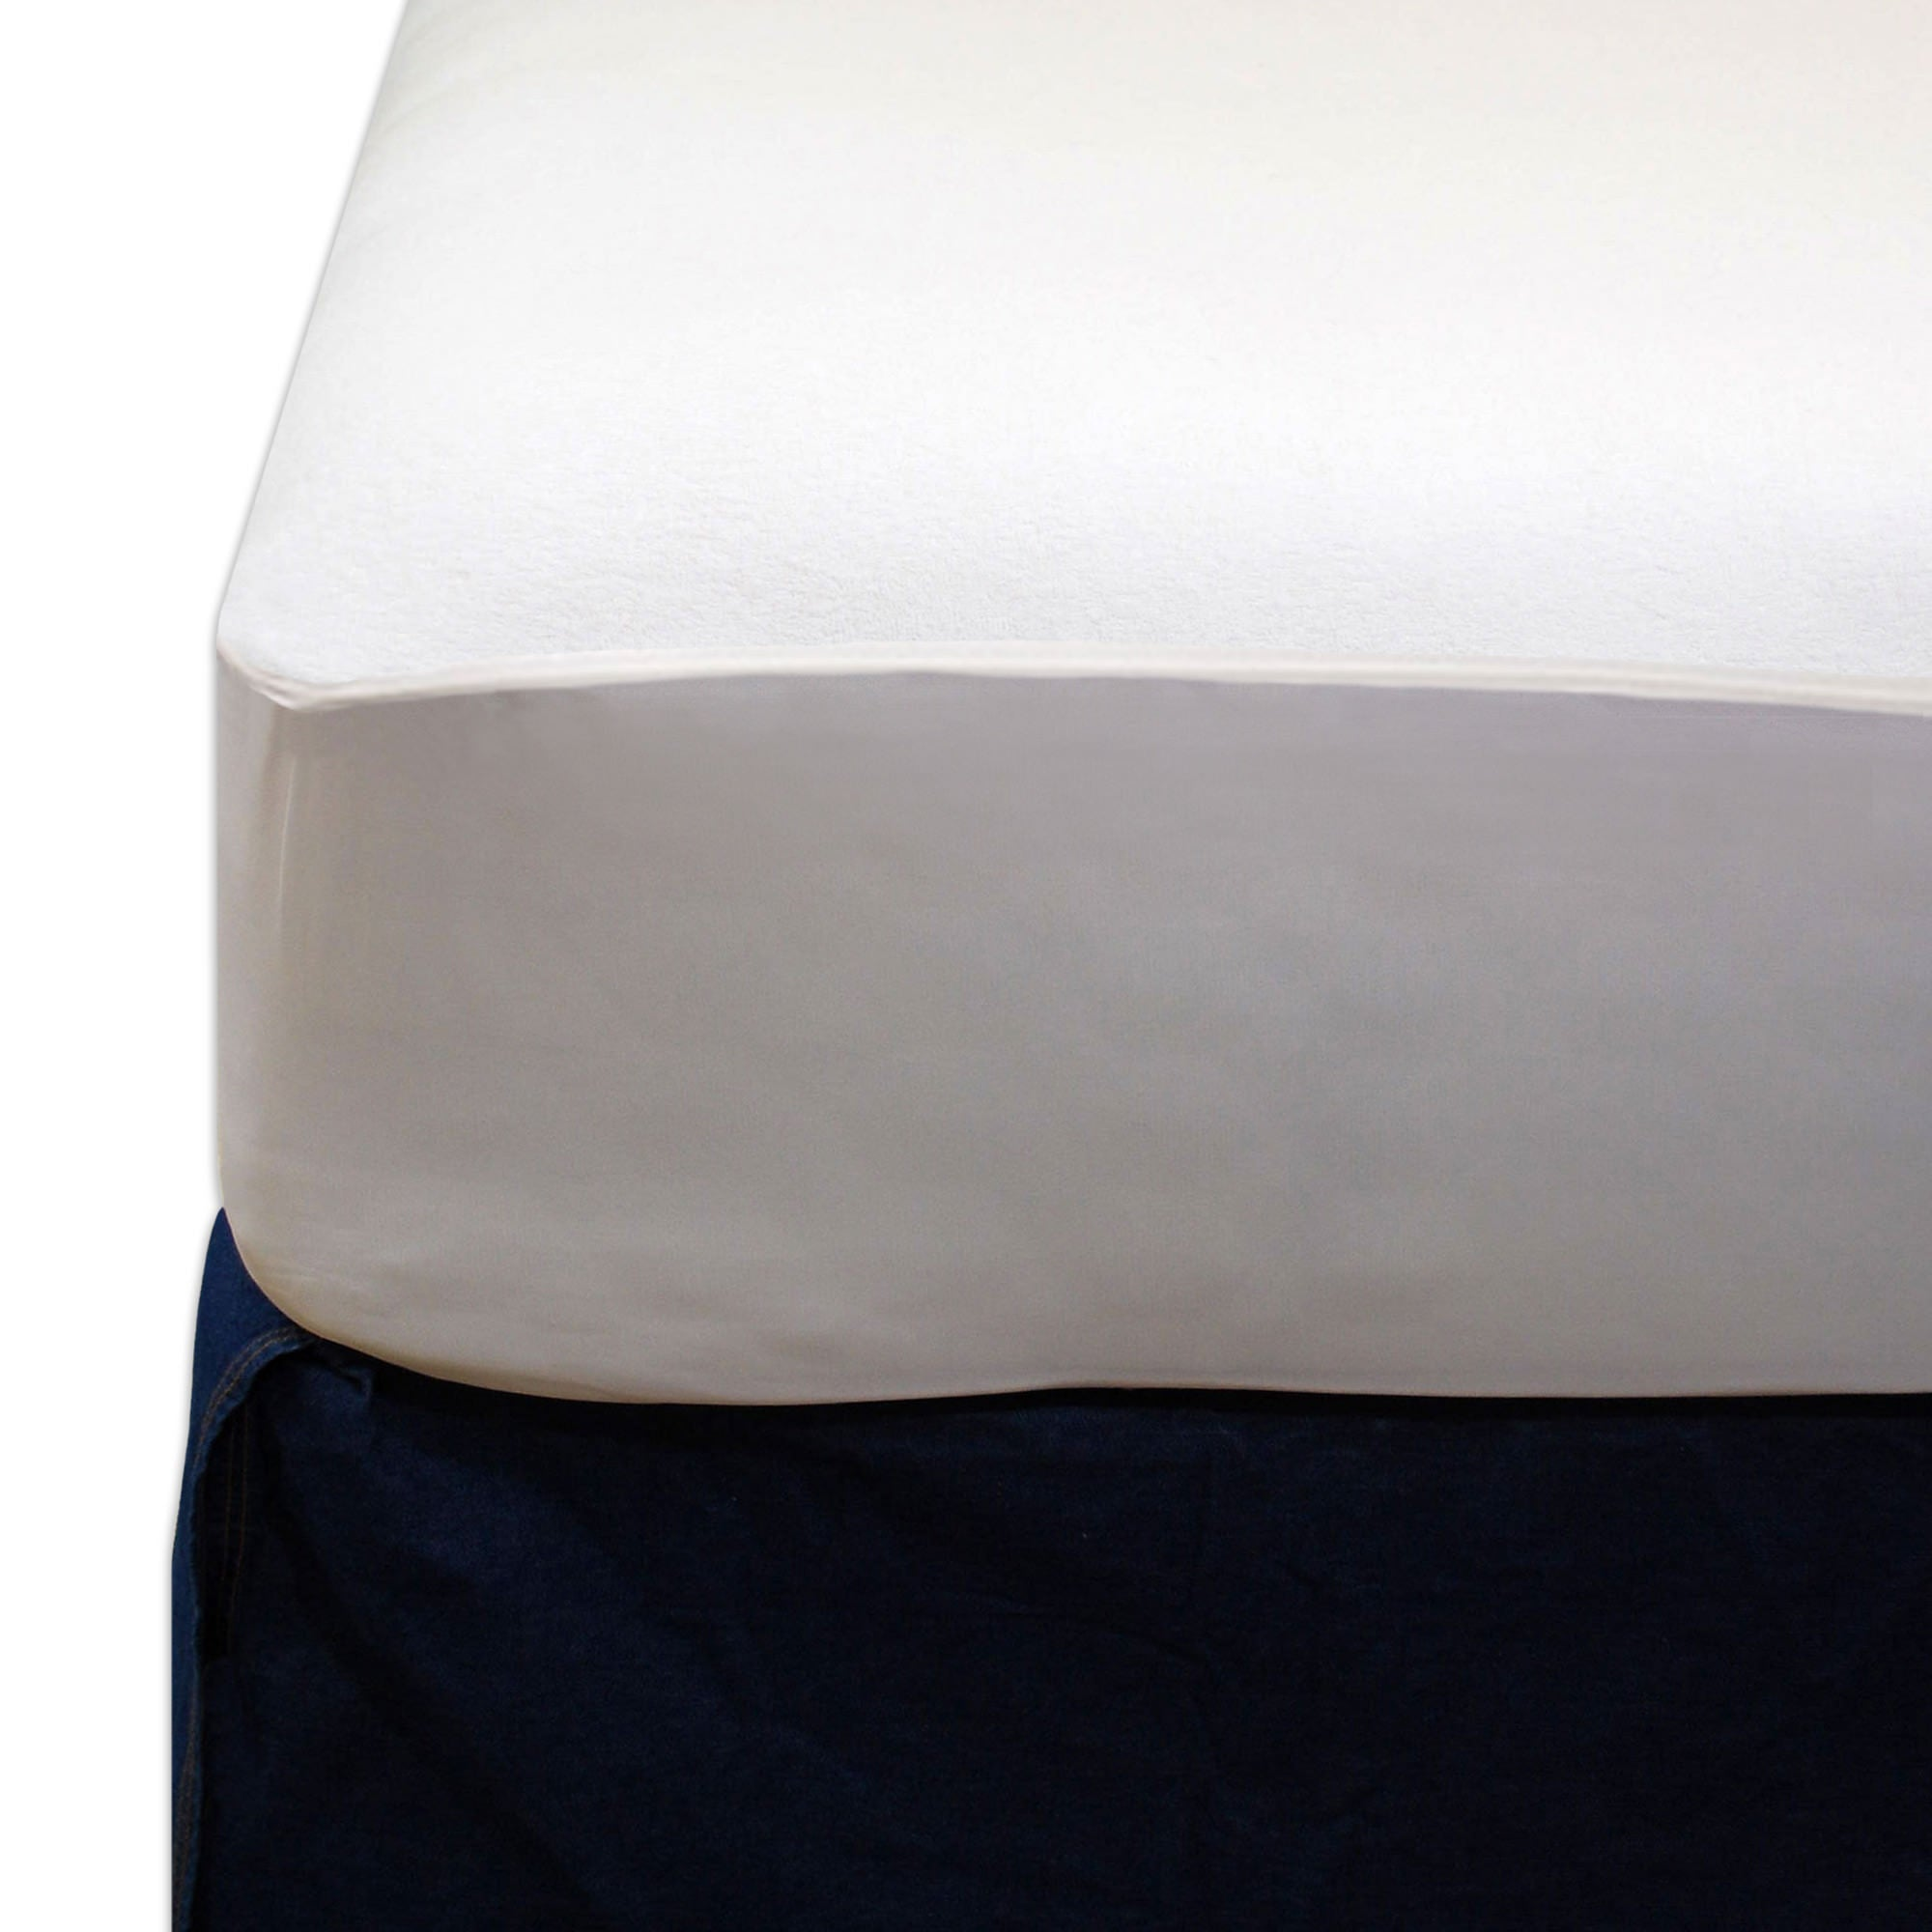 Breathable, Waterproof Mattress Protector (Zippered, 9-15 inch depth)